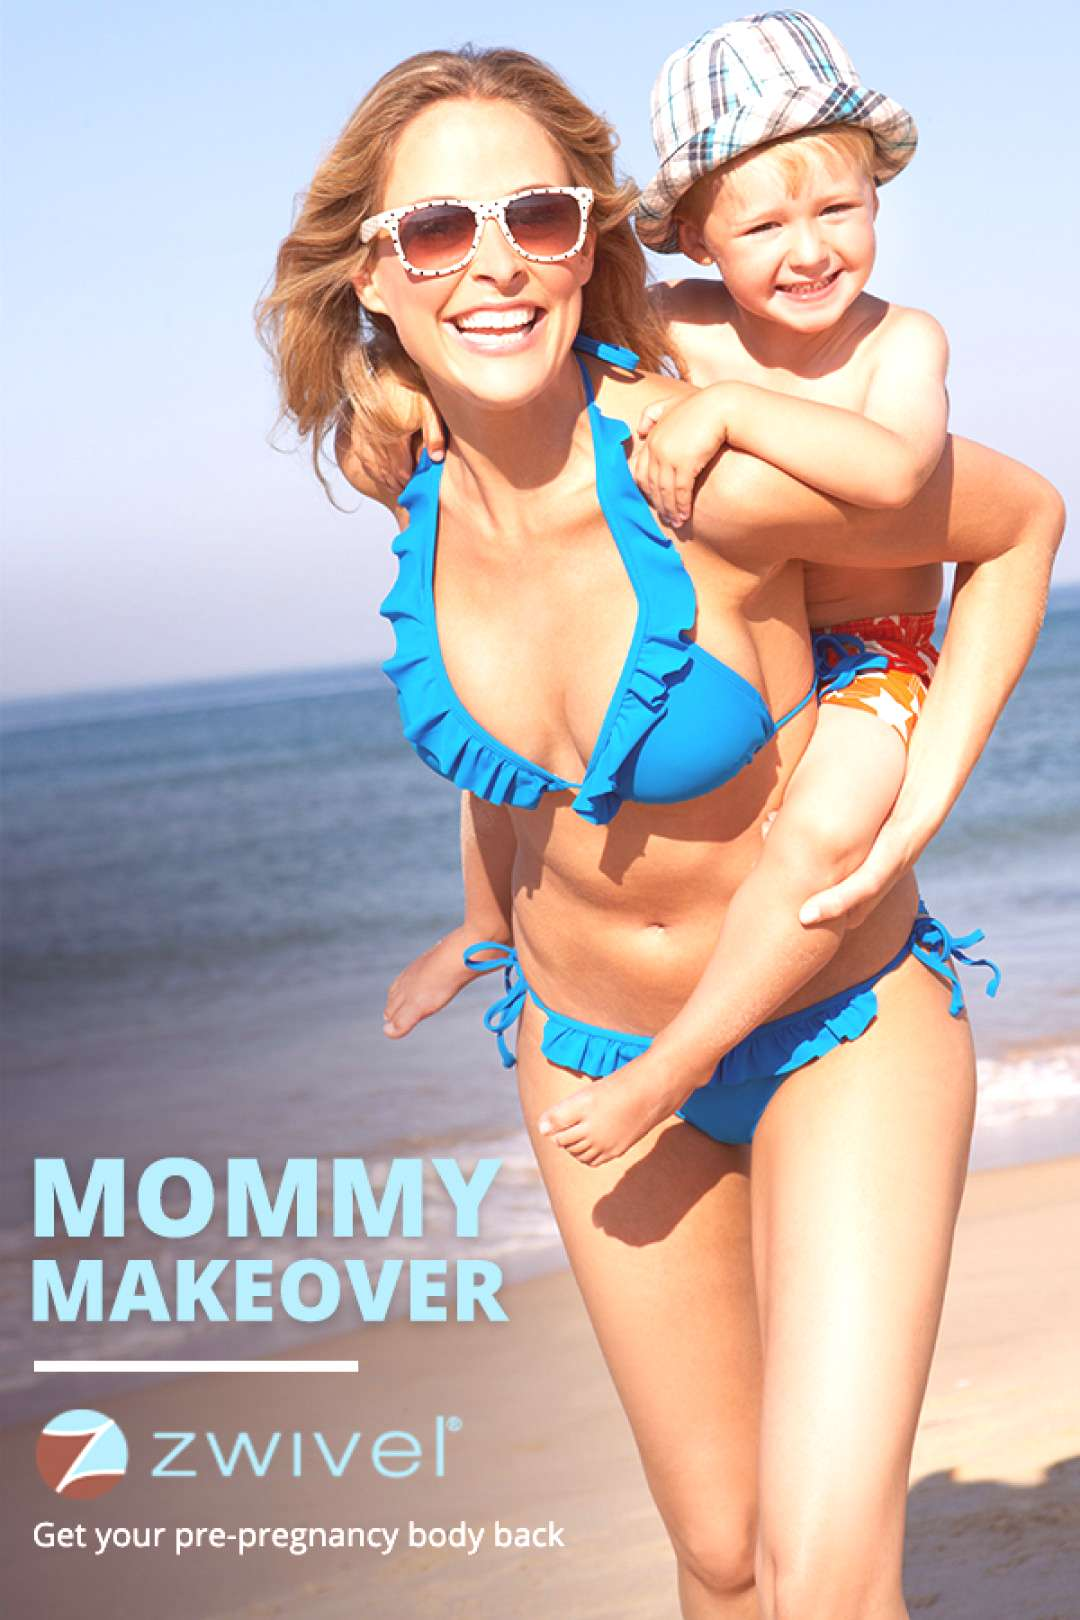 Mastering The Mommy Makeover Answering Your FAQs With the Doctors Mastering The Mommy Makeover Answ